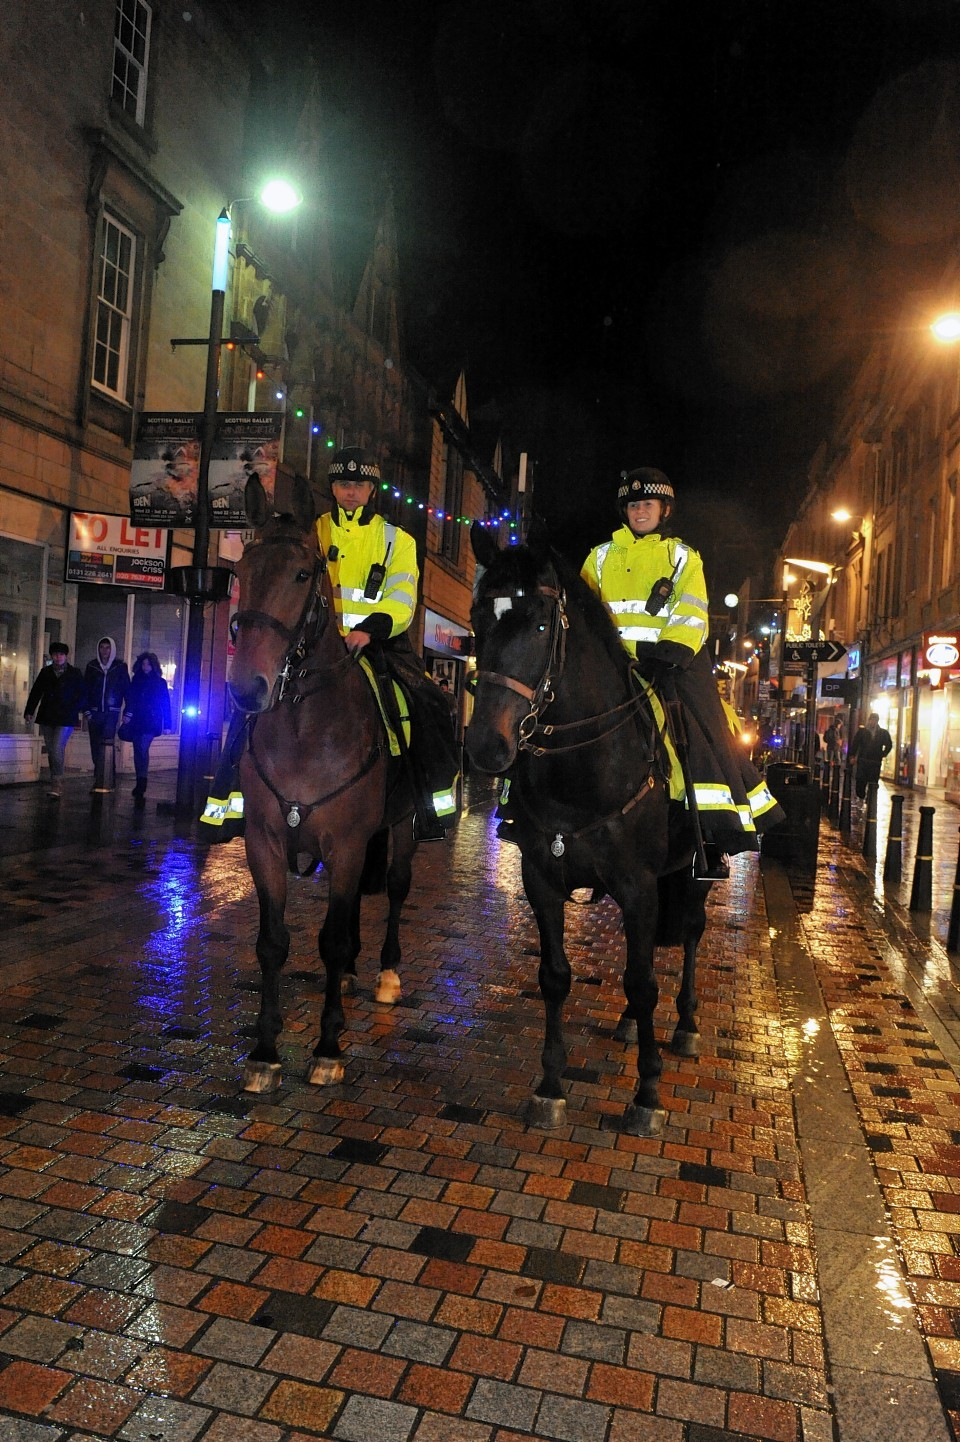 Police horses in Inverness city centre last year